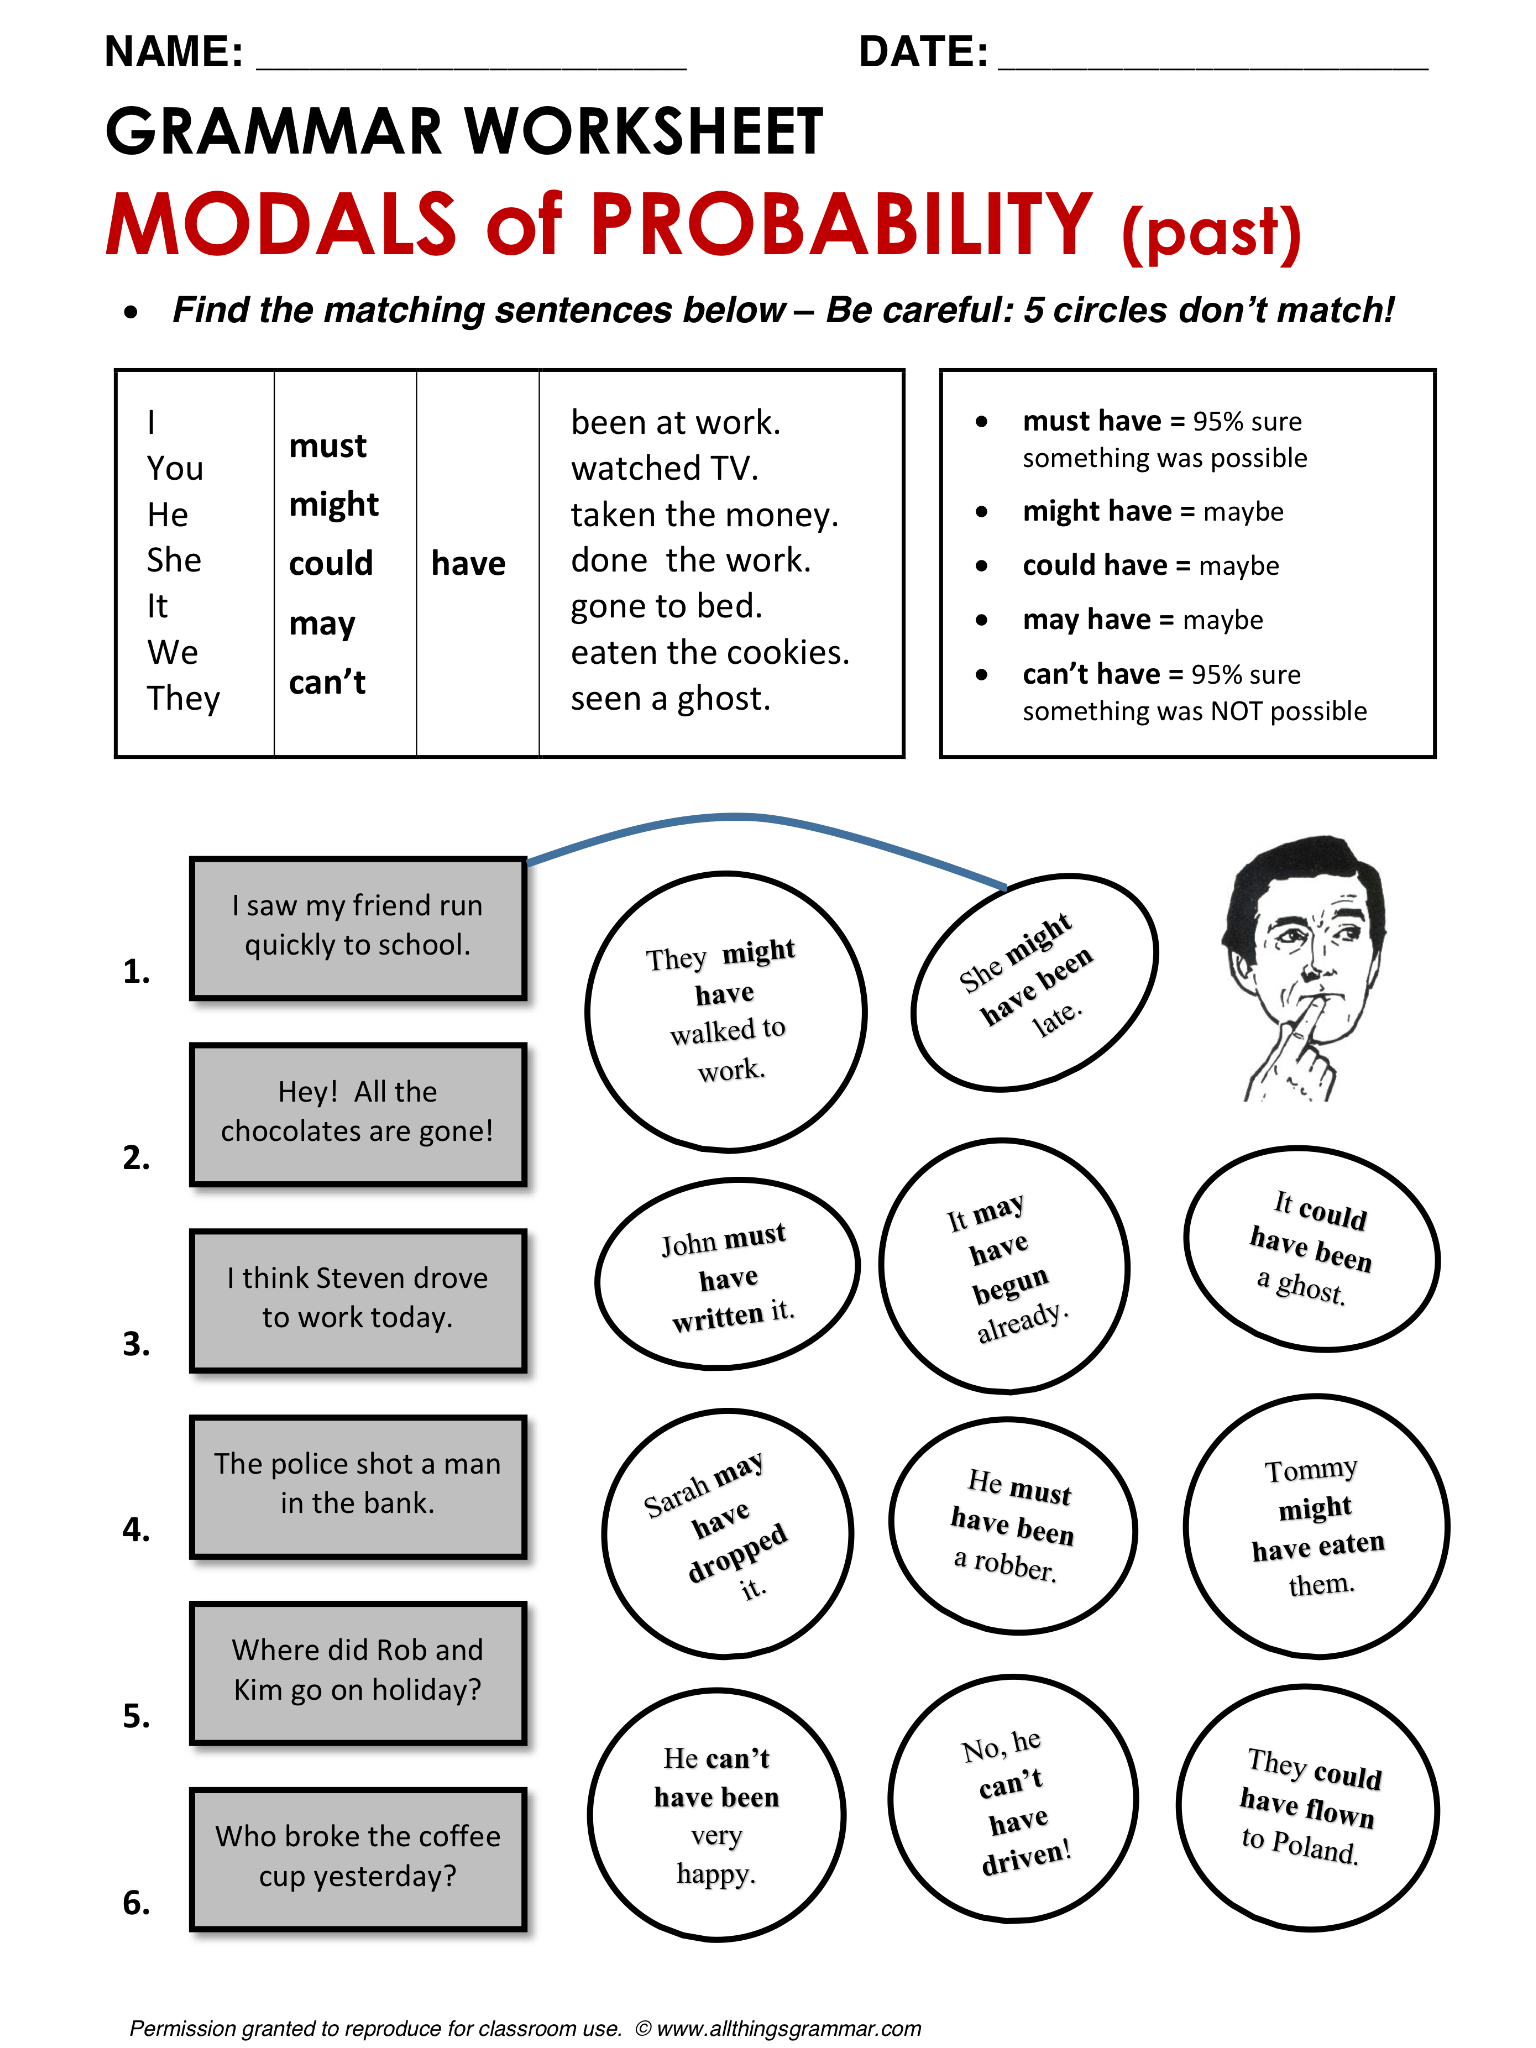 English Grammar Modals Of Probability For Talking About